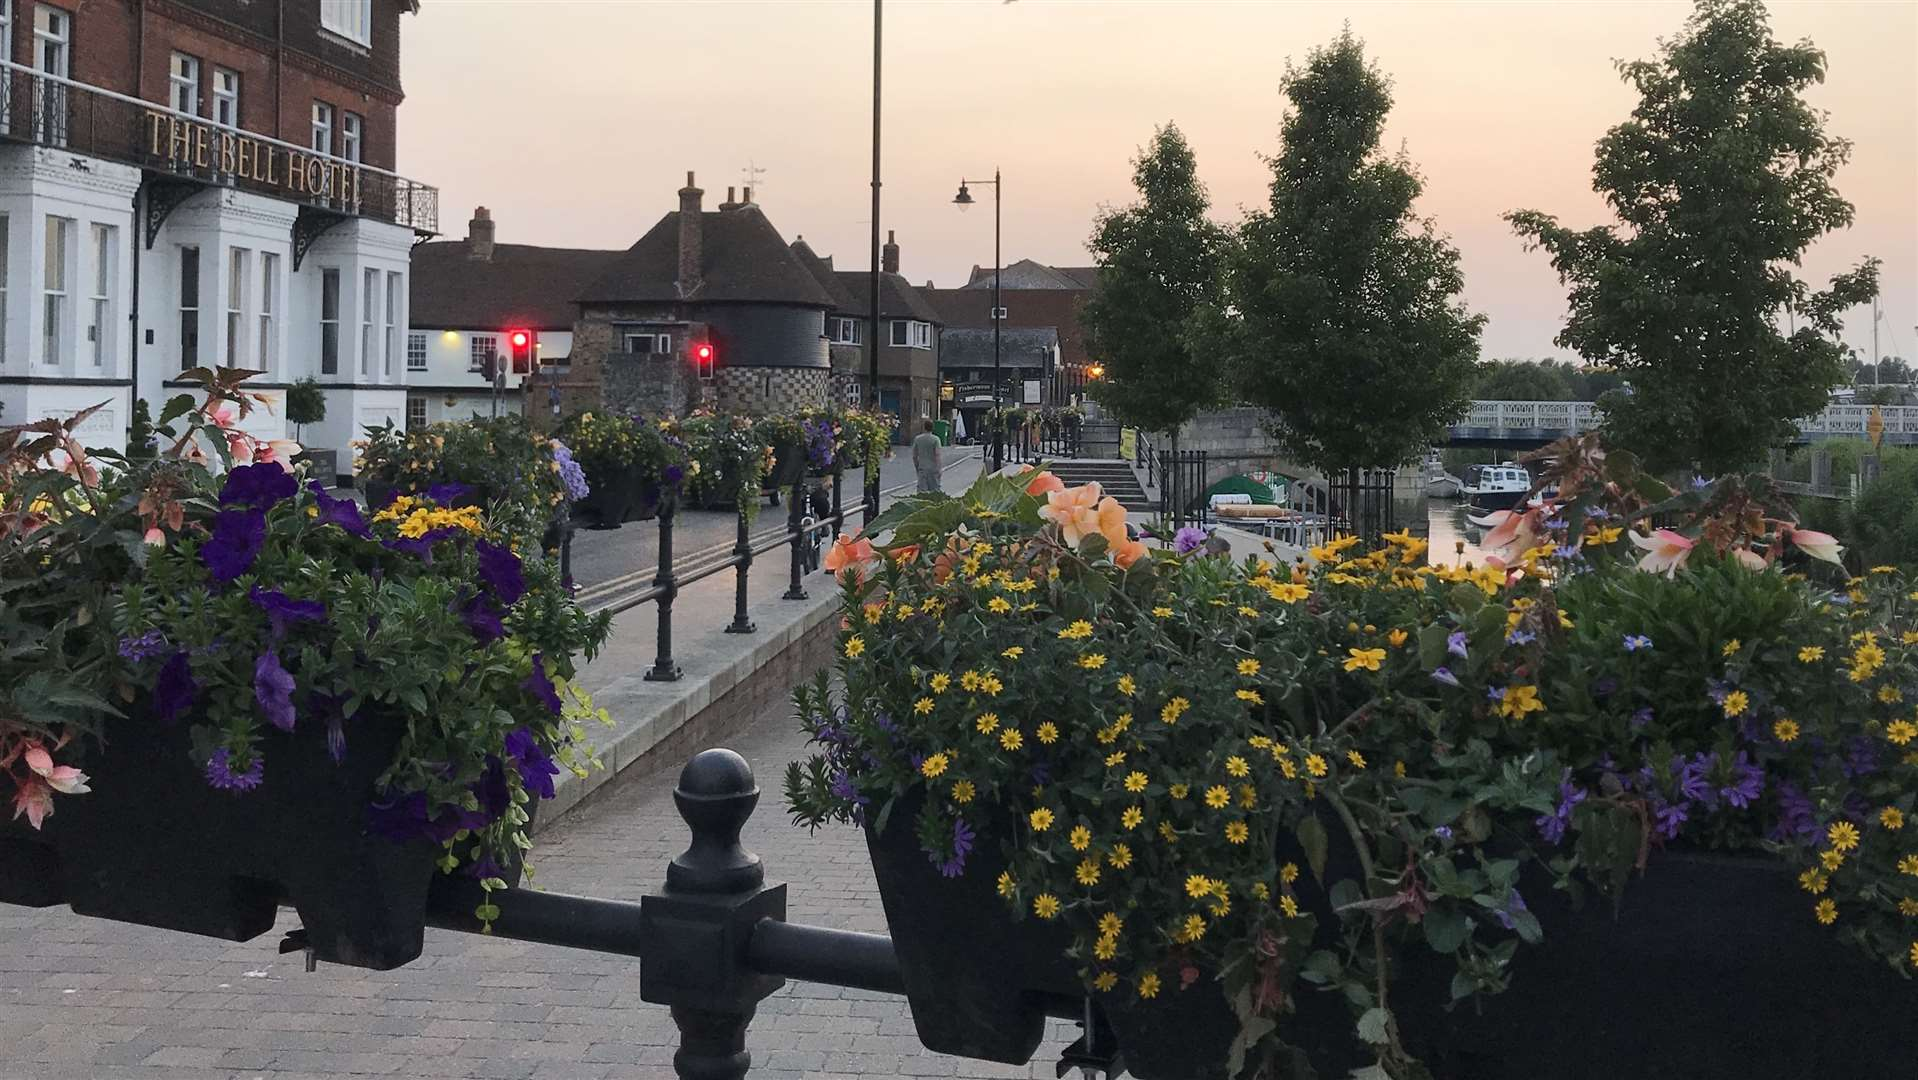 Sandwich in Bloom launched a three-year project to make the town more attractive ahead of The Open 2020